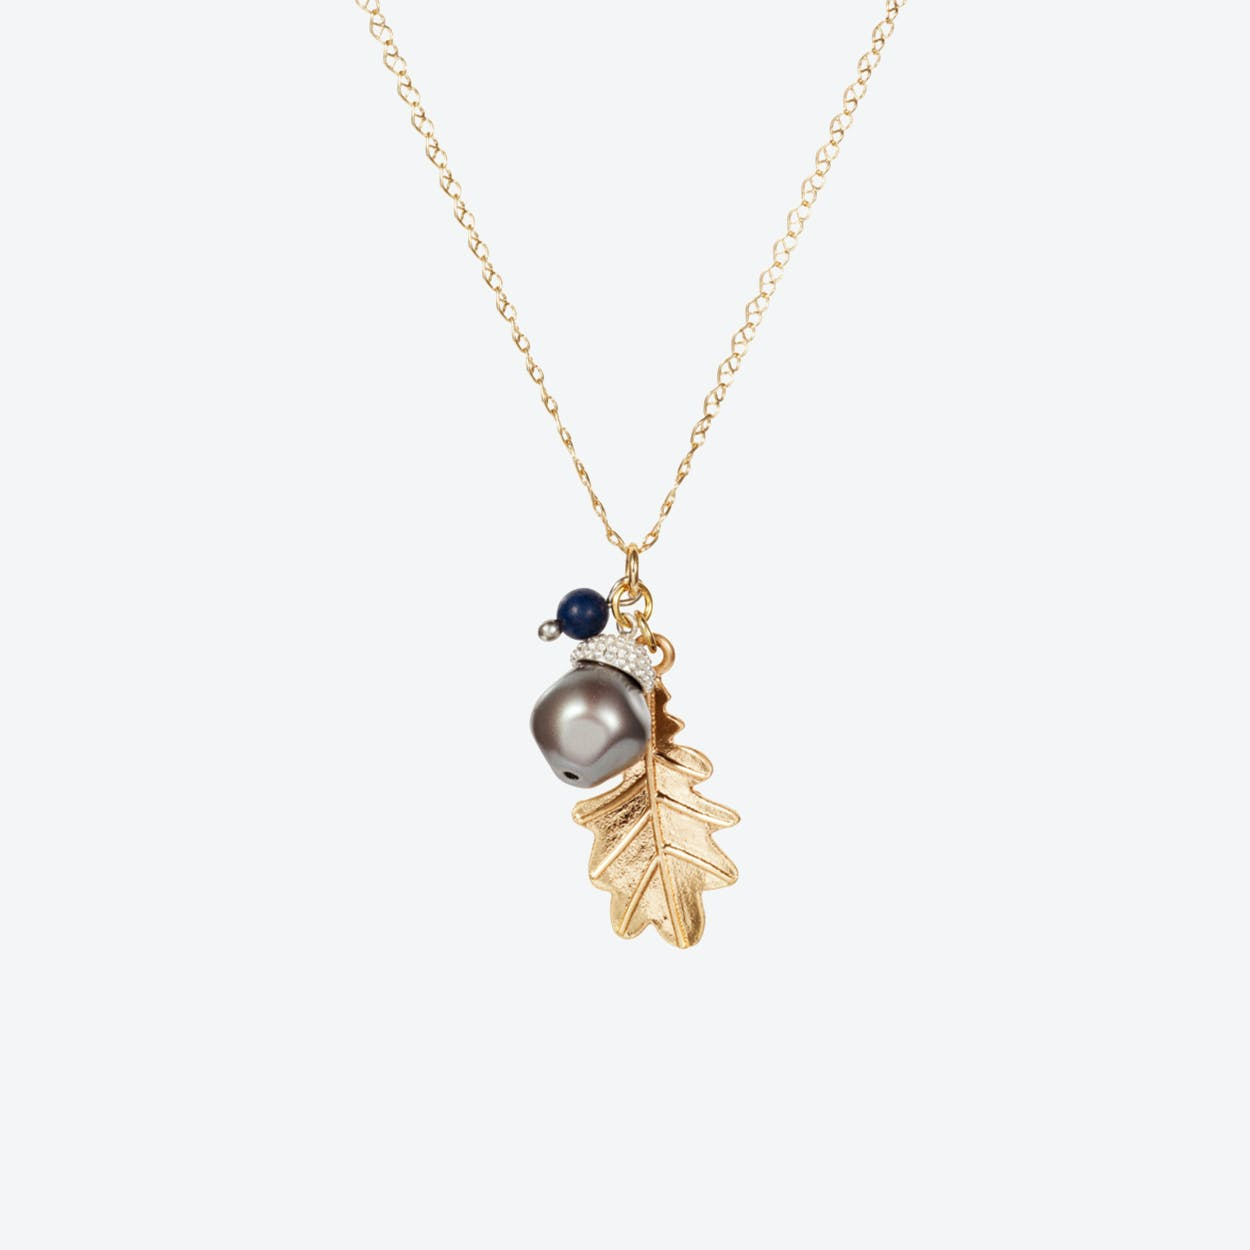 Acorn Charm Necklace – Gold with Baroque Pearl & Blue Lapis